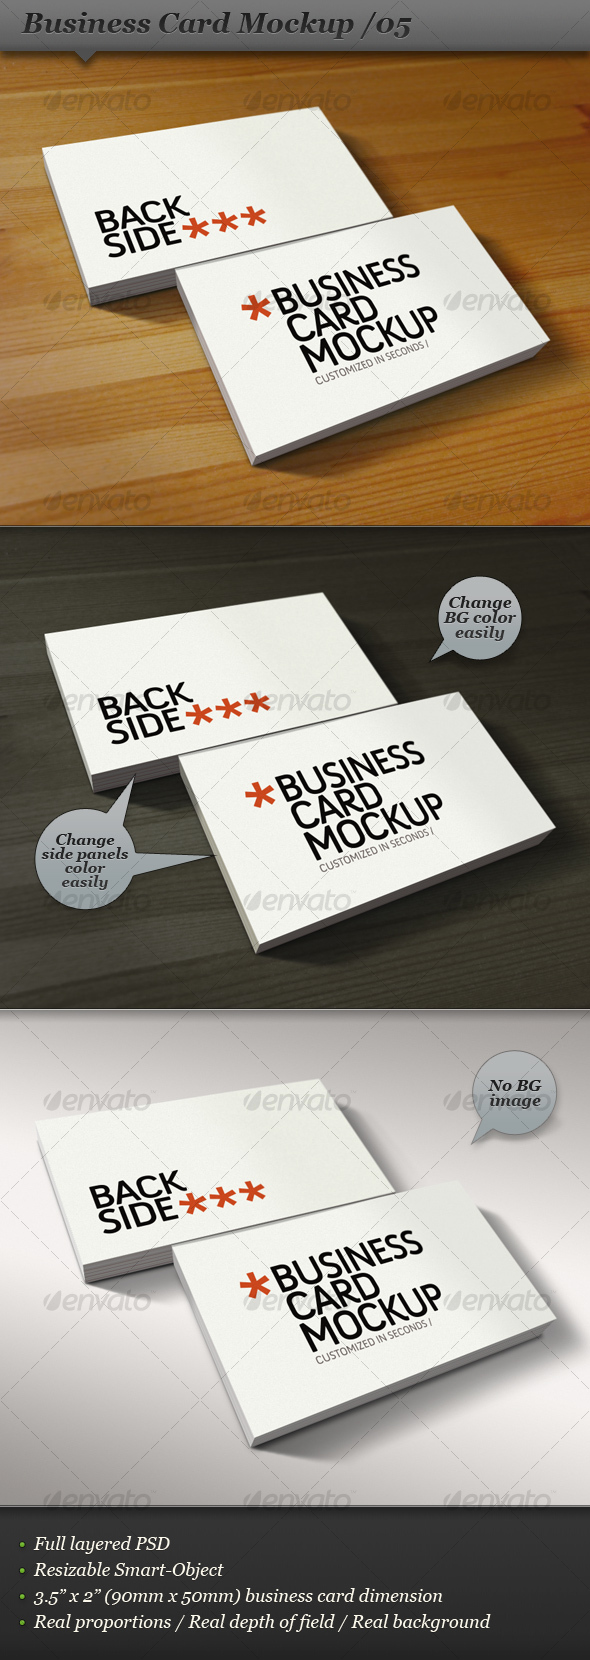 Business card mockup display - Smart template 05 - Business Cards Print